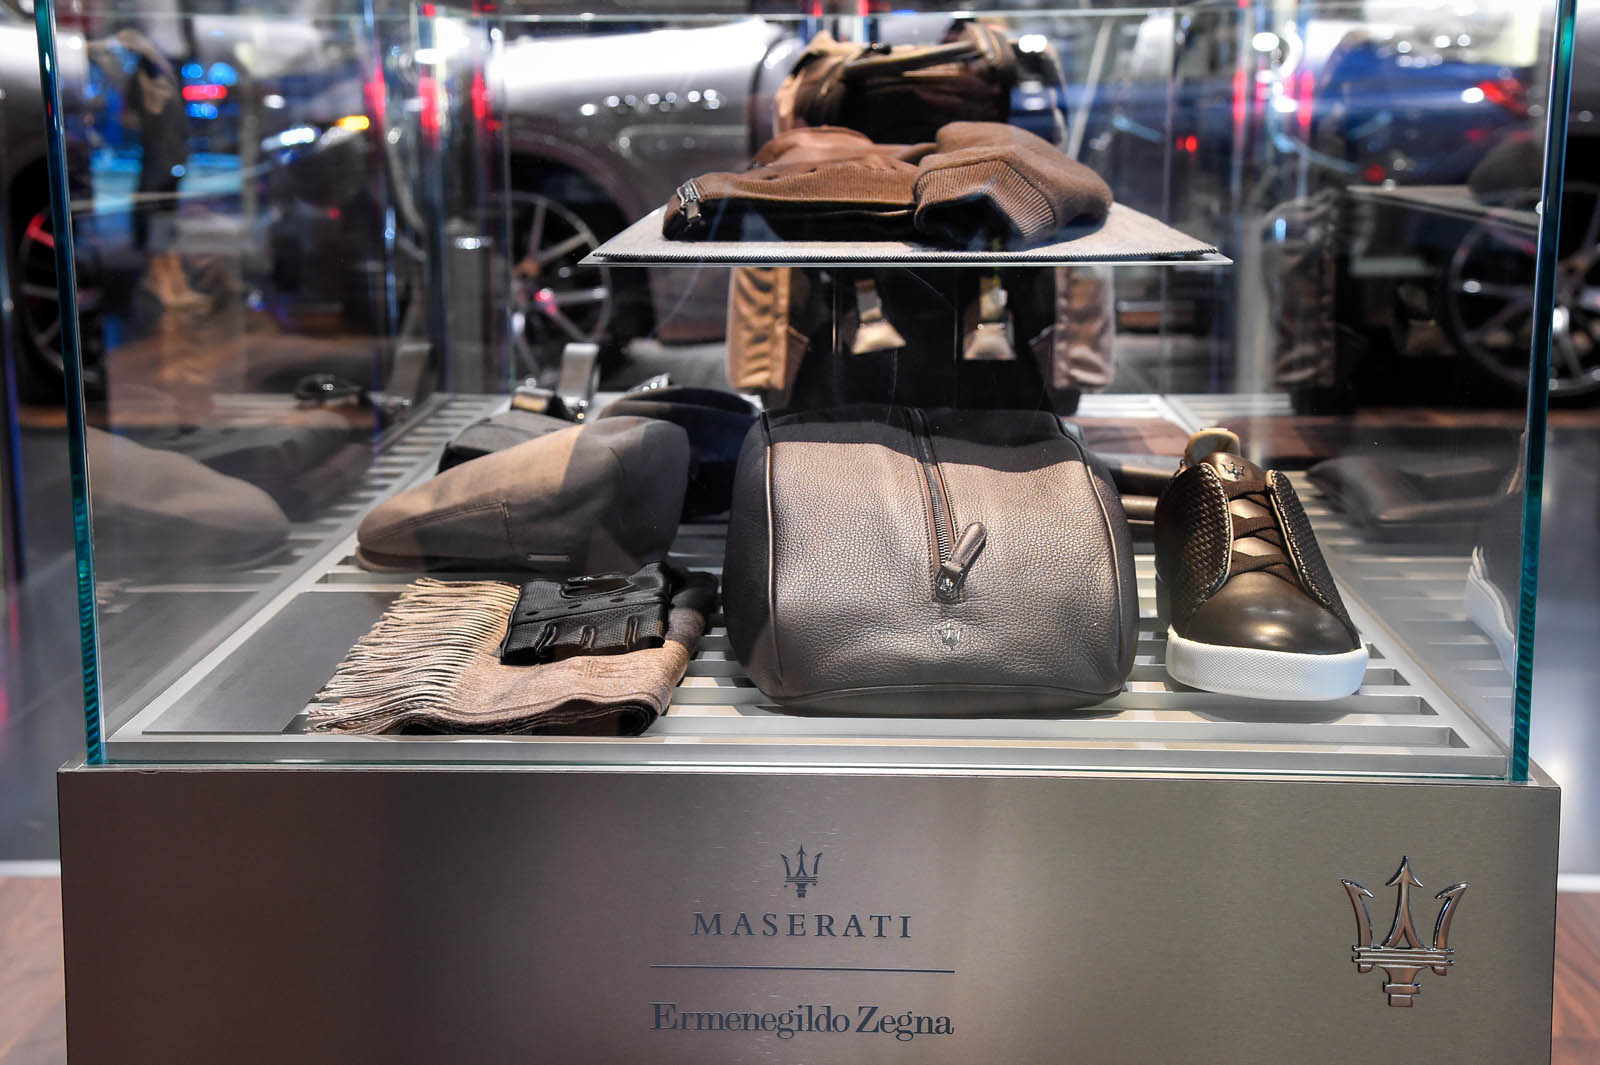 Frankfurt Motor Show 2017 - Maserati Capsule Collection by Ermenegildo Zegna copy